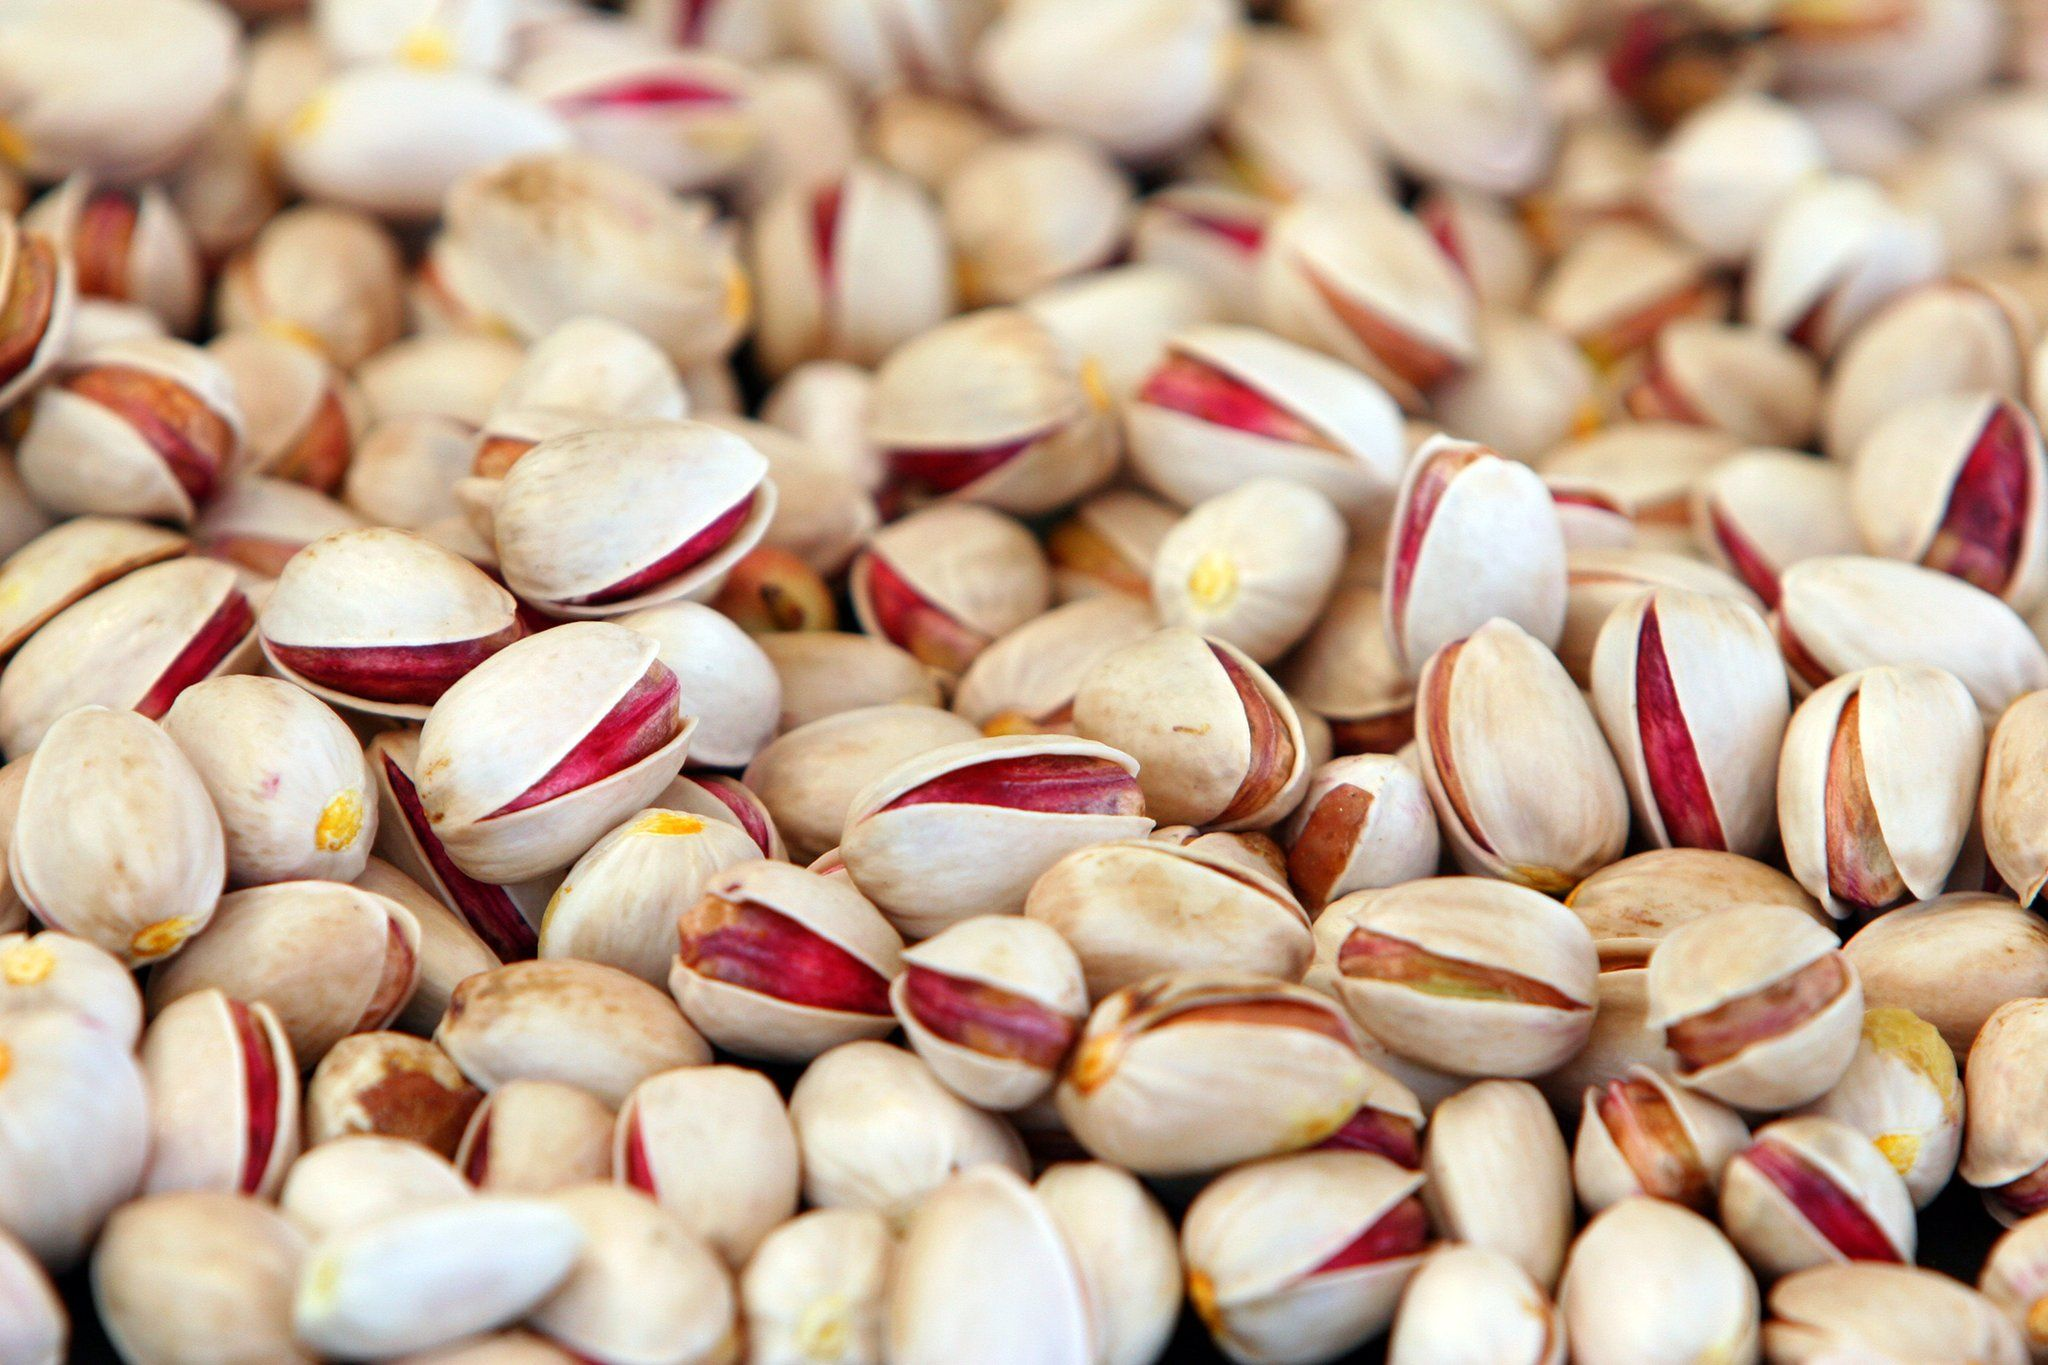 Gizmodo: It's going to be a bad year for pistachios https://t.co/Mp0r7YGWLF https://t.co/YJtPdDe1YM